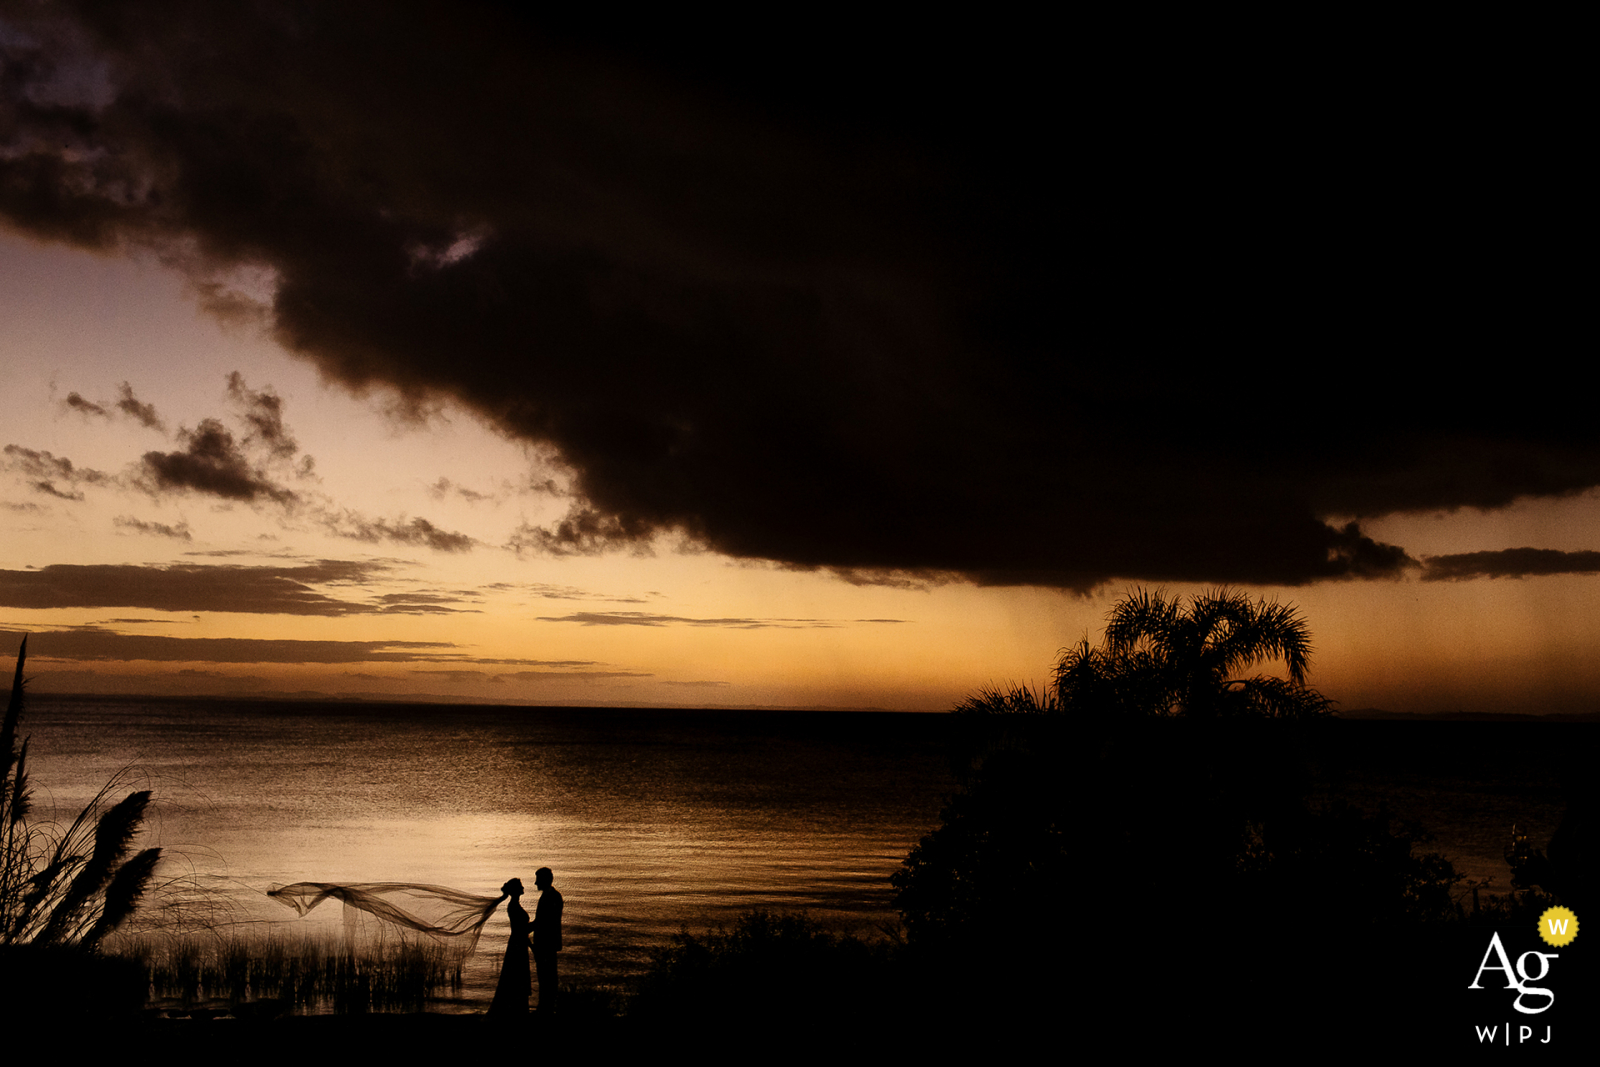 The Butiá after Ceremony Silhouette portrait of the bride and groom in the late afternoon